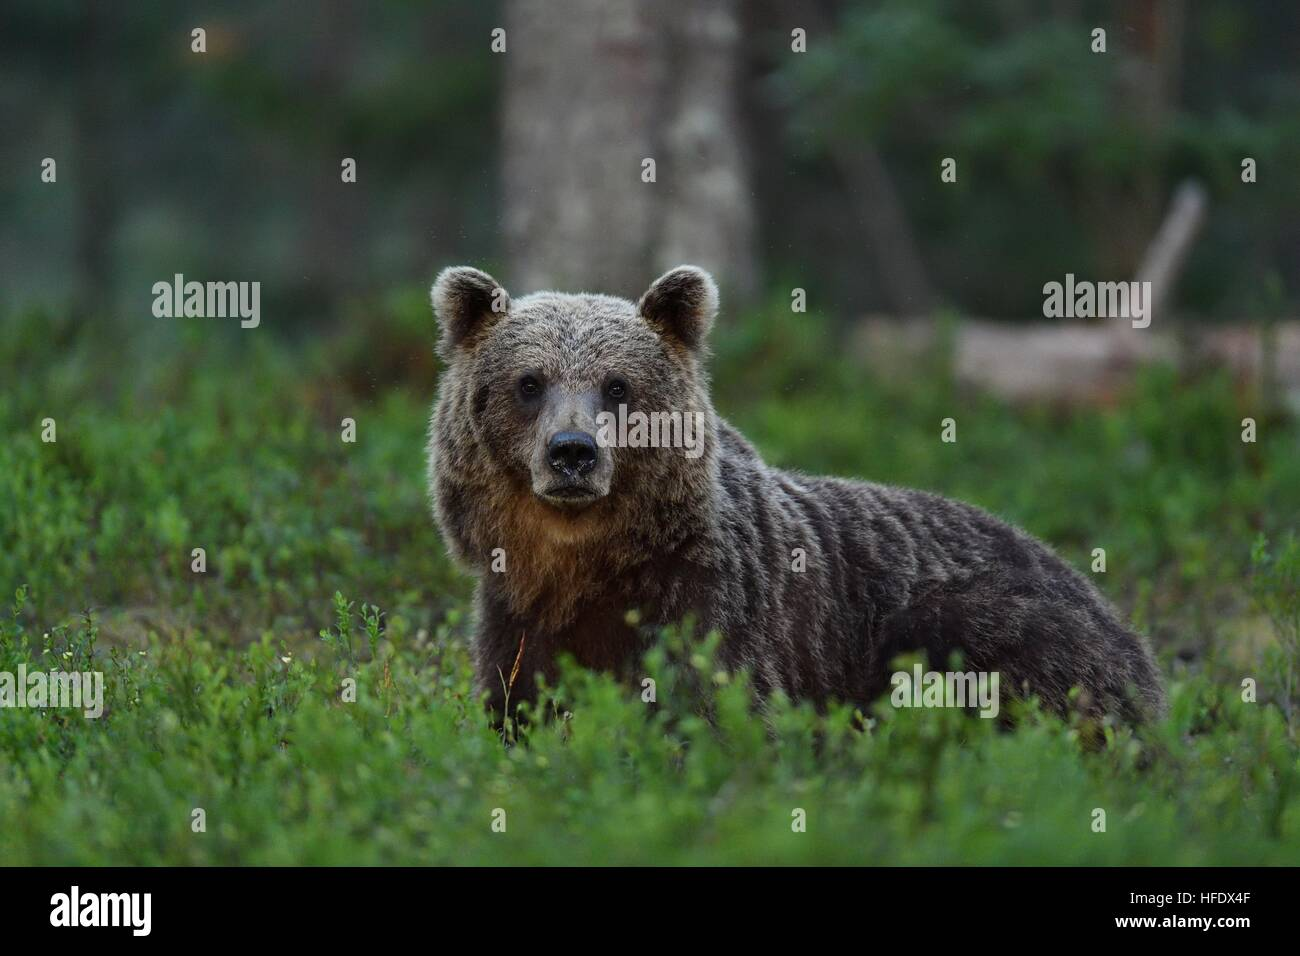 brown bear in forest at night. bear glance. wild animal. animal at night. - Stock Image